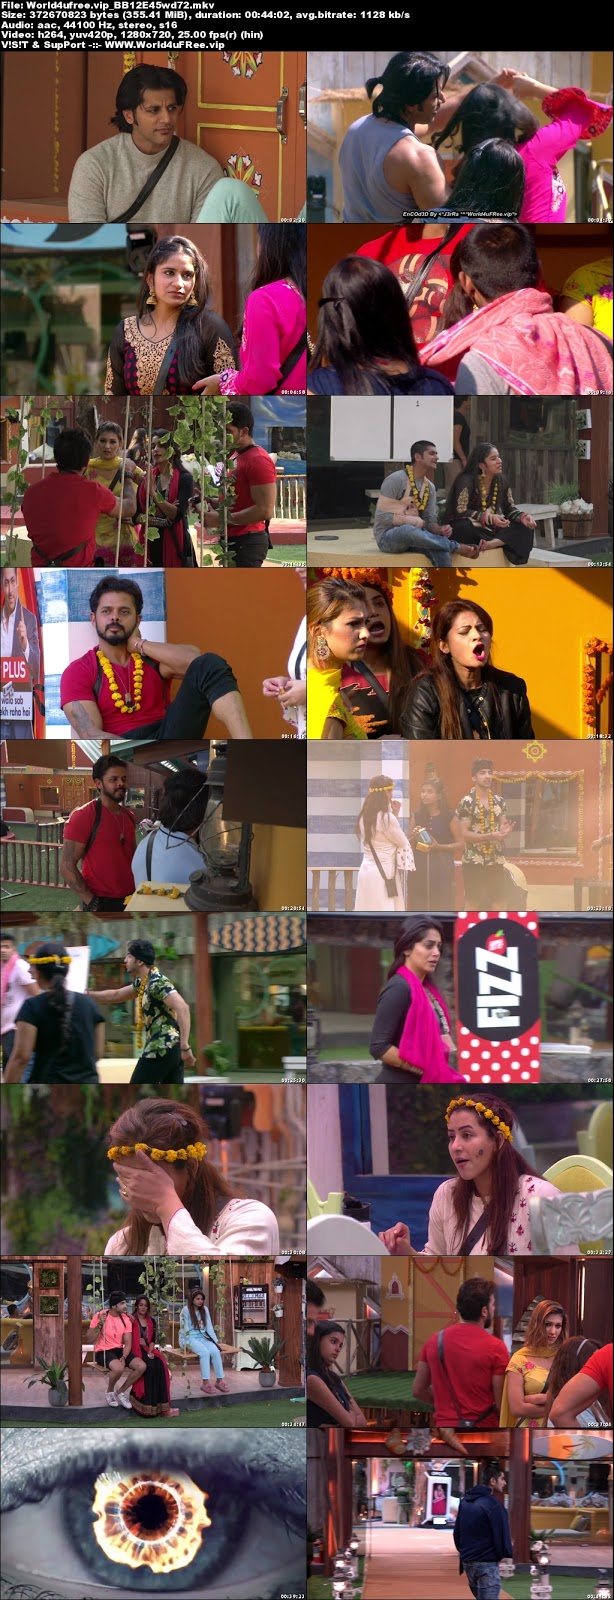 Bigg Boss 12 Episode 45 31 October 2018 720p WEBRip 350Mb x264 world4ufree.vip tv show Episode 45 31 October 2018 world4ufree.vip 300mb 250mb 300mb compressed small size free download or watch online at world4ufree.vip